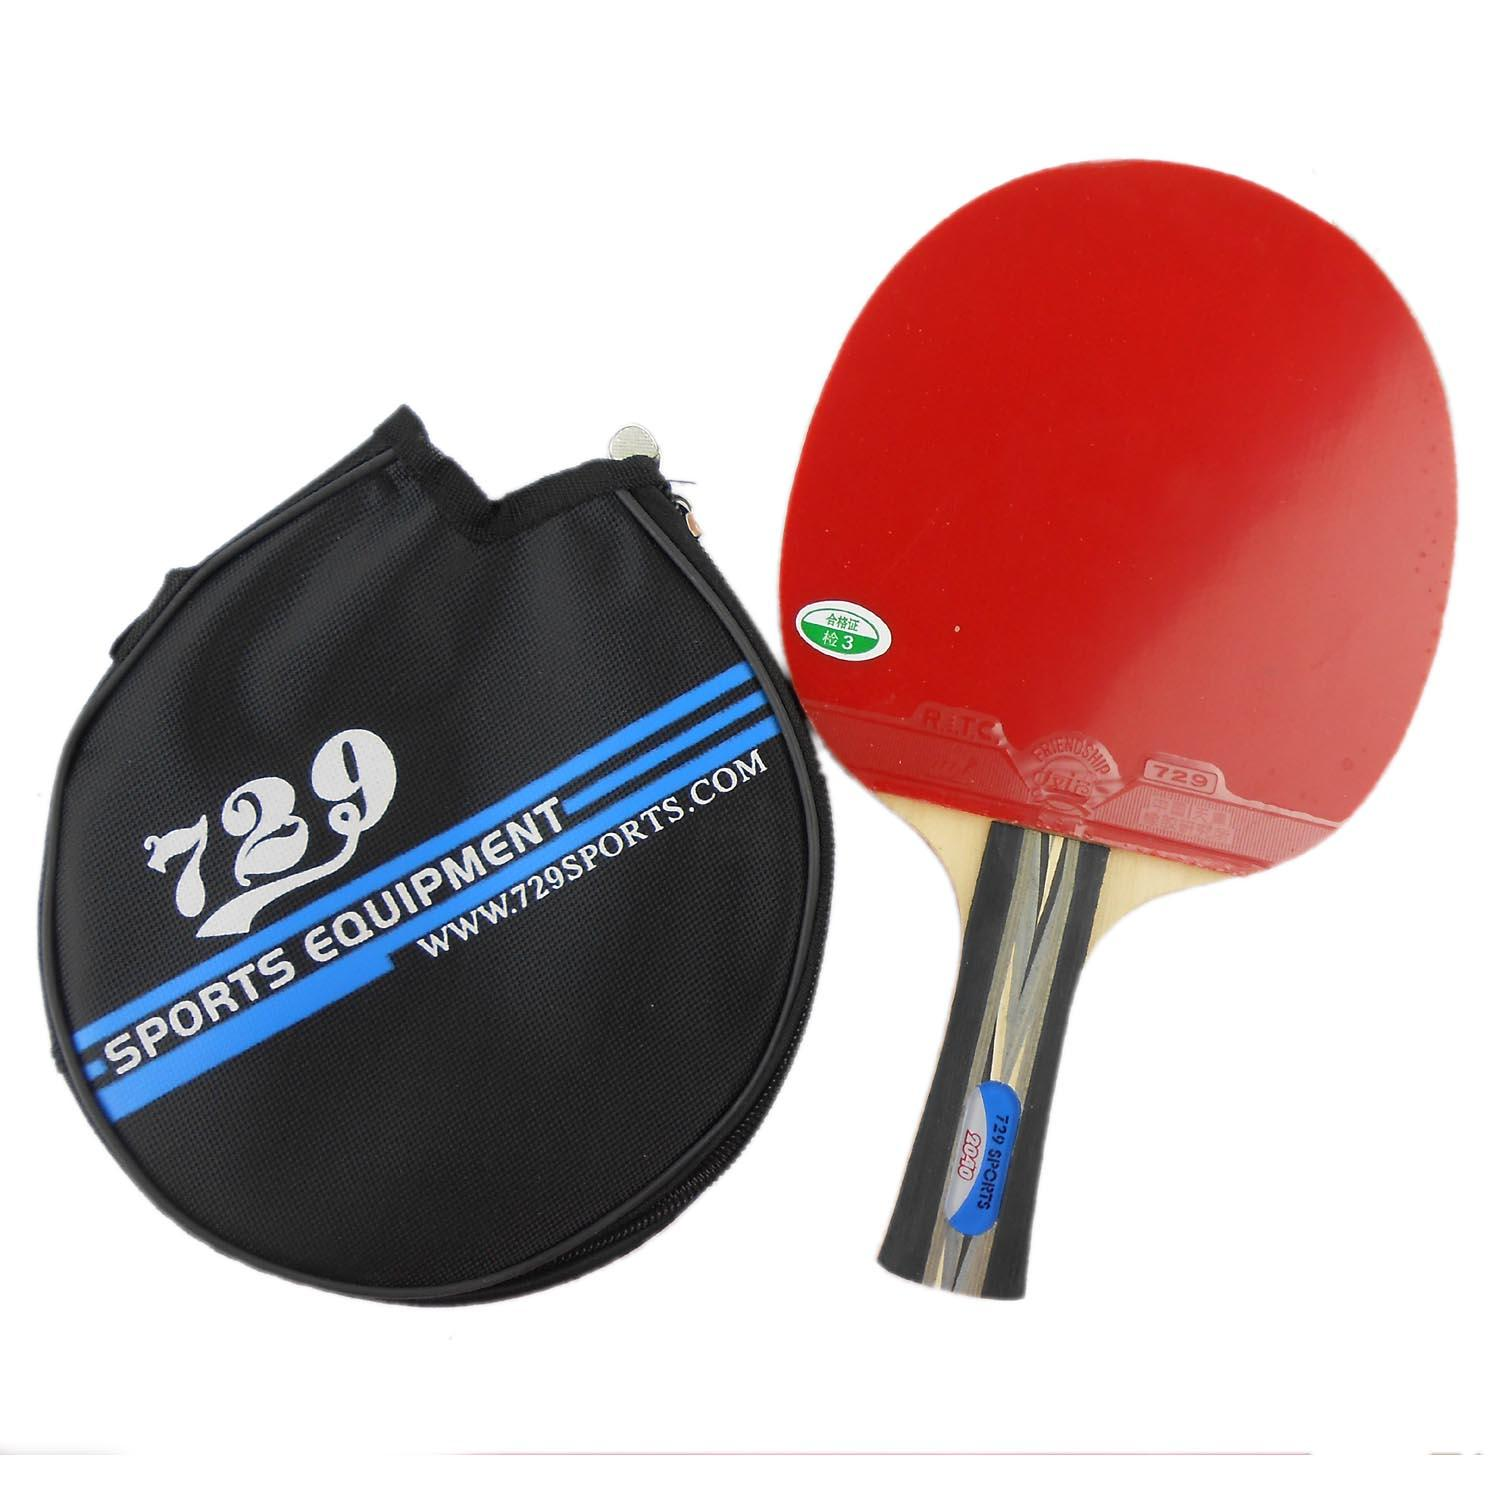 2018 Ritc 729 Friendship 2040 Pips In Table Tennis Ping Pong